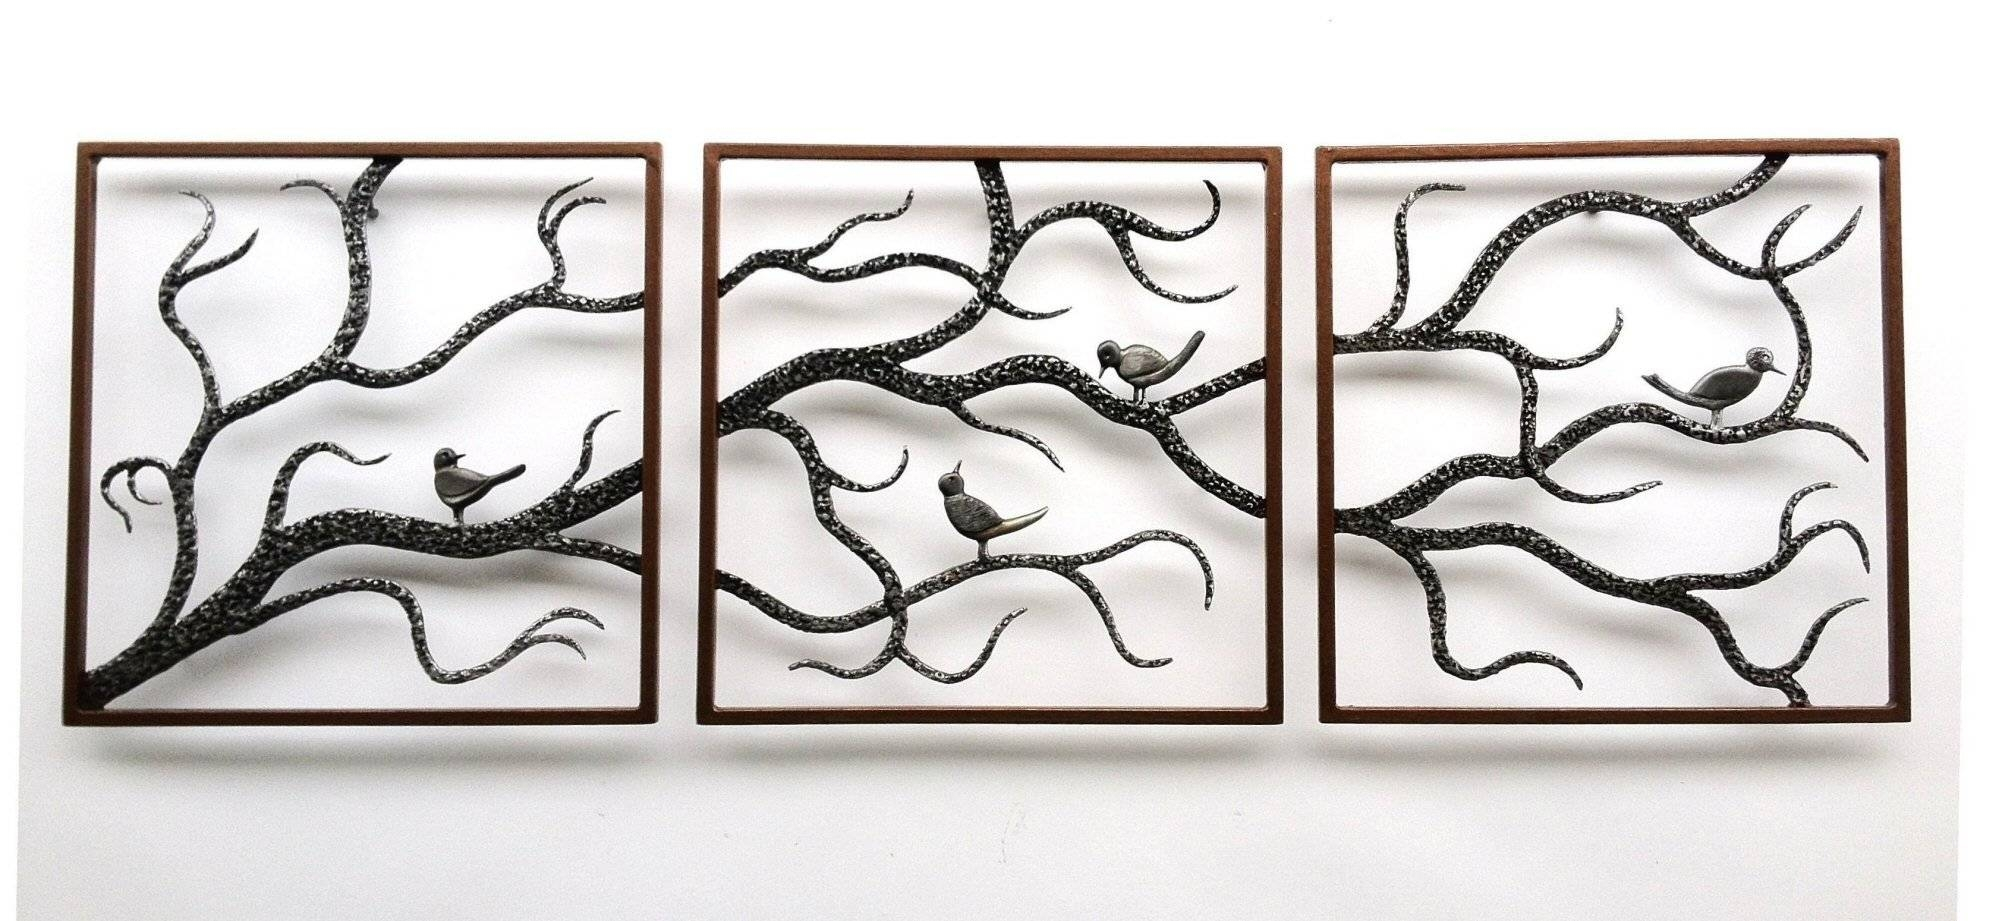 Wall Art Designs: Metal Wall Art Trees Birch Three Framed Cute Pertaining To Newest Framed Metal Wall Art (View 14 of 20)